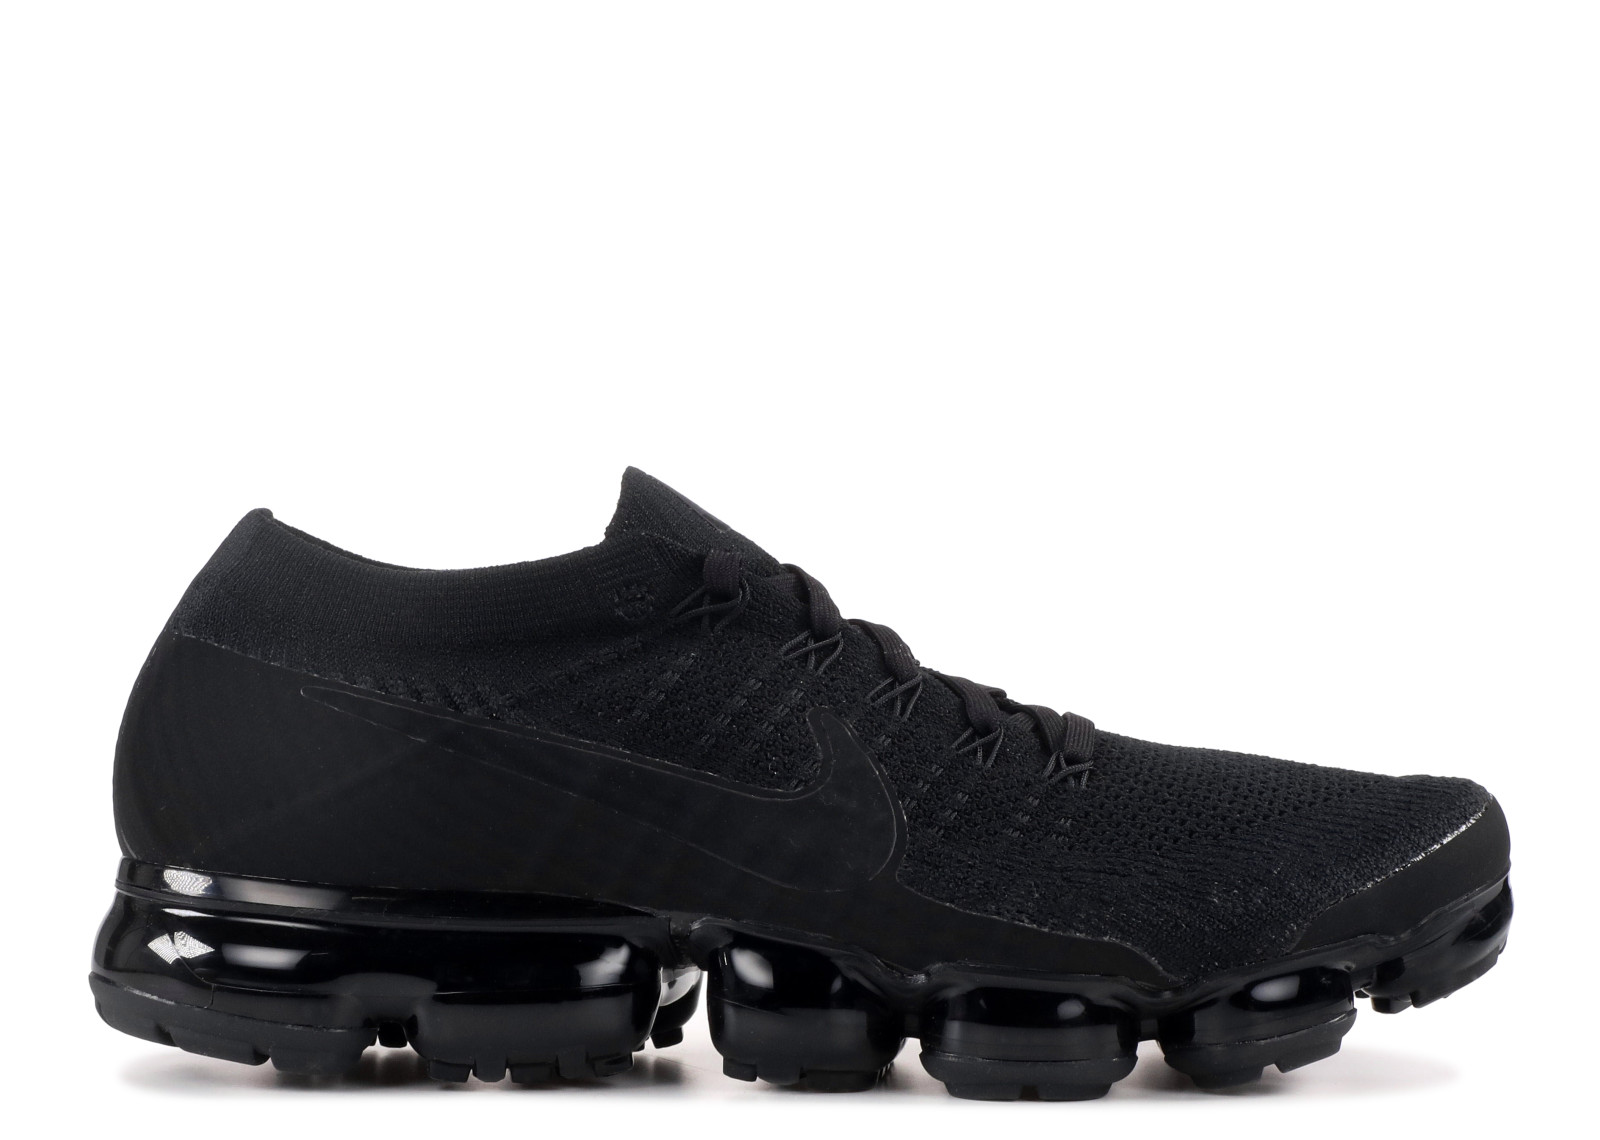 wide selection of colors classic chic top style Nike - Men - Nike Air Vapormax Flyknit 'Triple Black ...